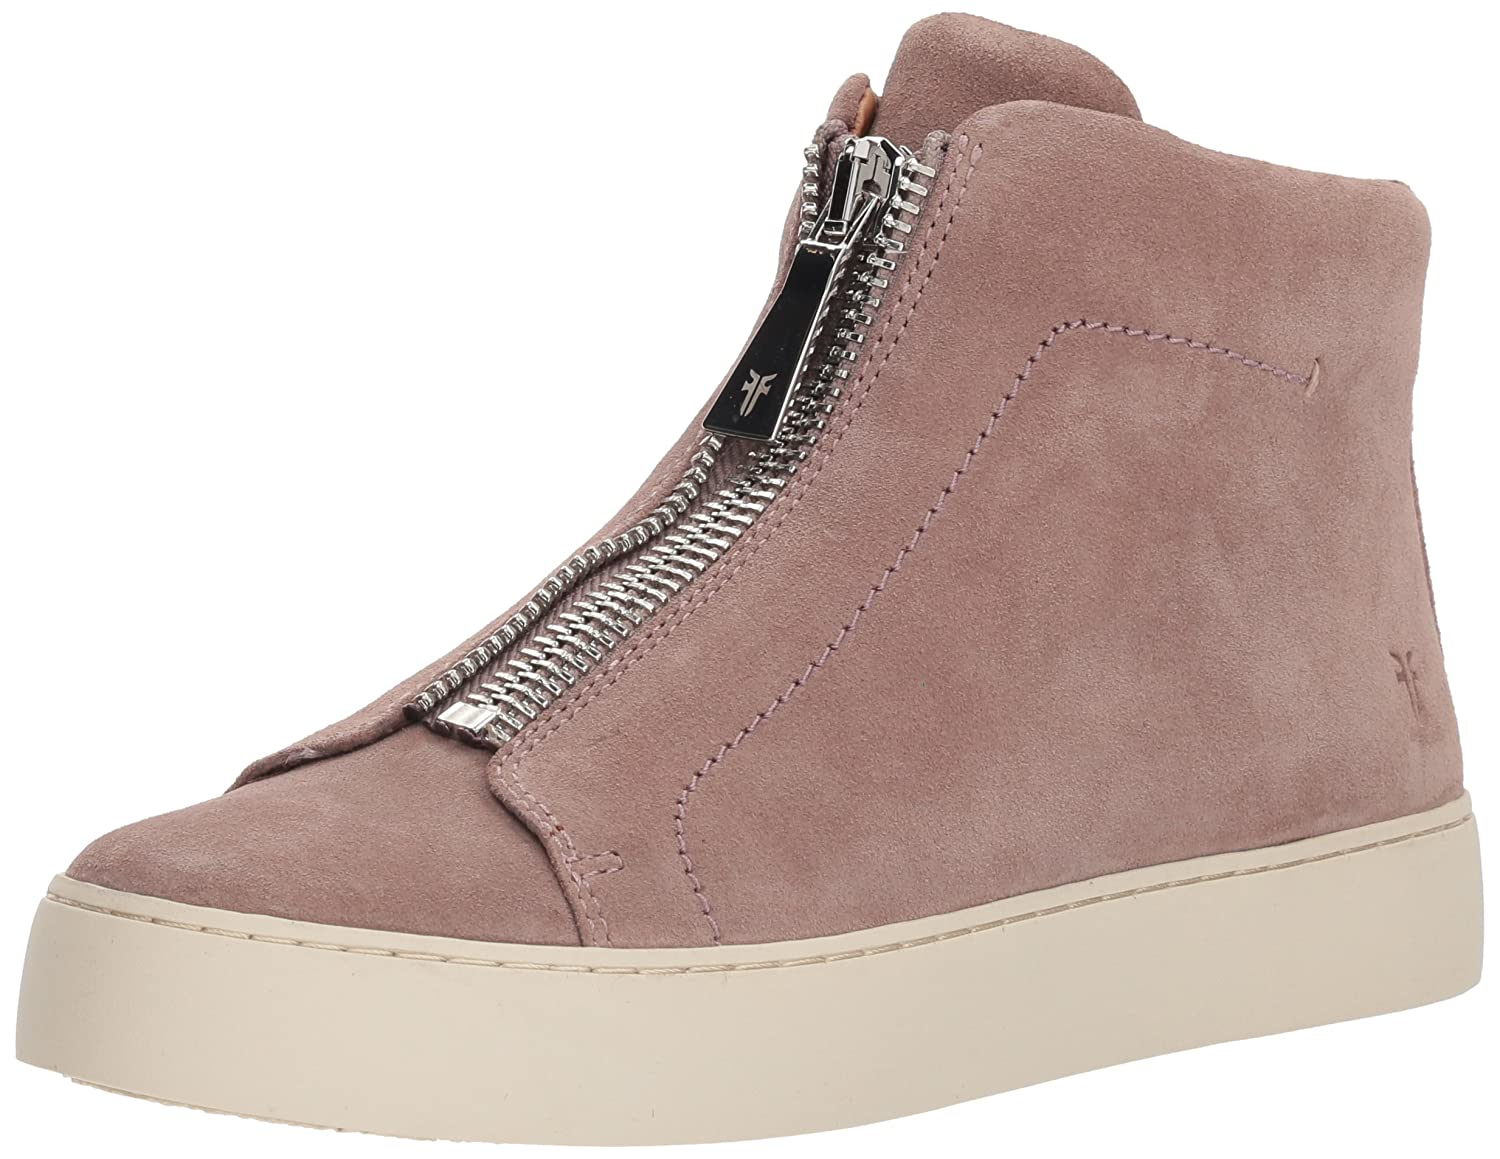 FRYE Women's Lena Zip High Fashion Sneaker B07215R33J 11 B(M) US|Dusty Rose